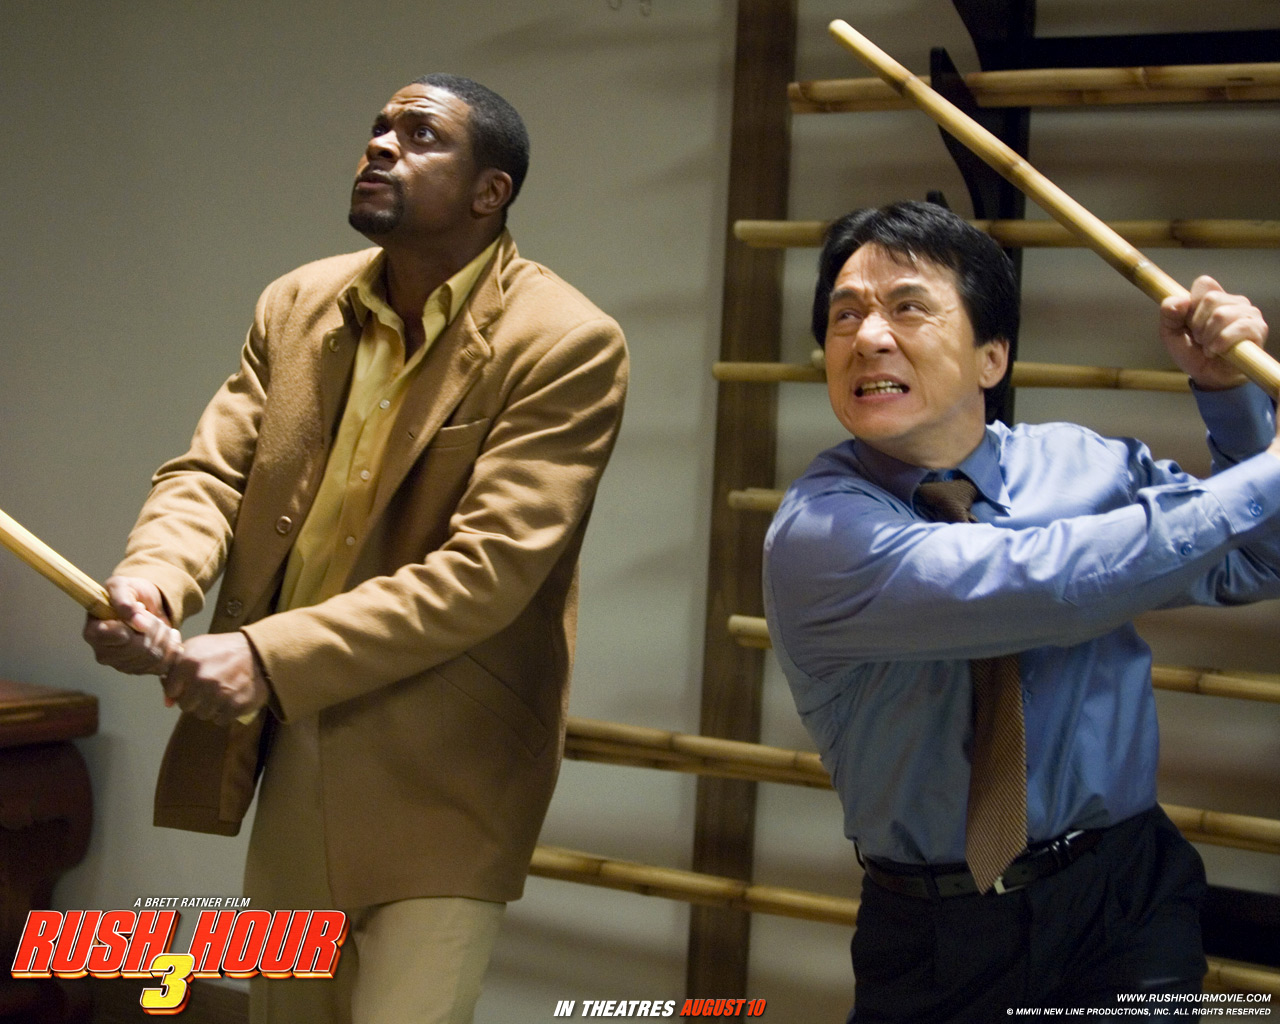 Rush hour images lee carter rush hour 3 hd wallpaper and rush hour images lee carter rush hour 3 hd wallpaper and background photos voltagebd Image collections